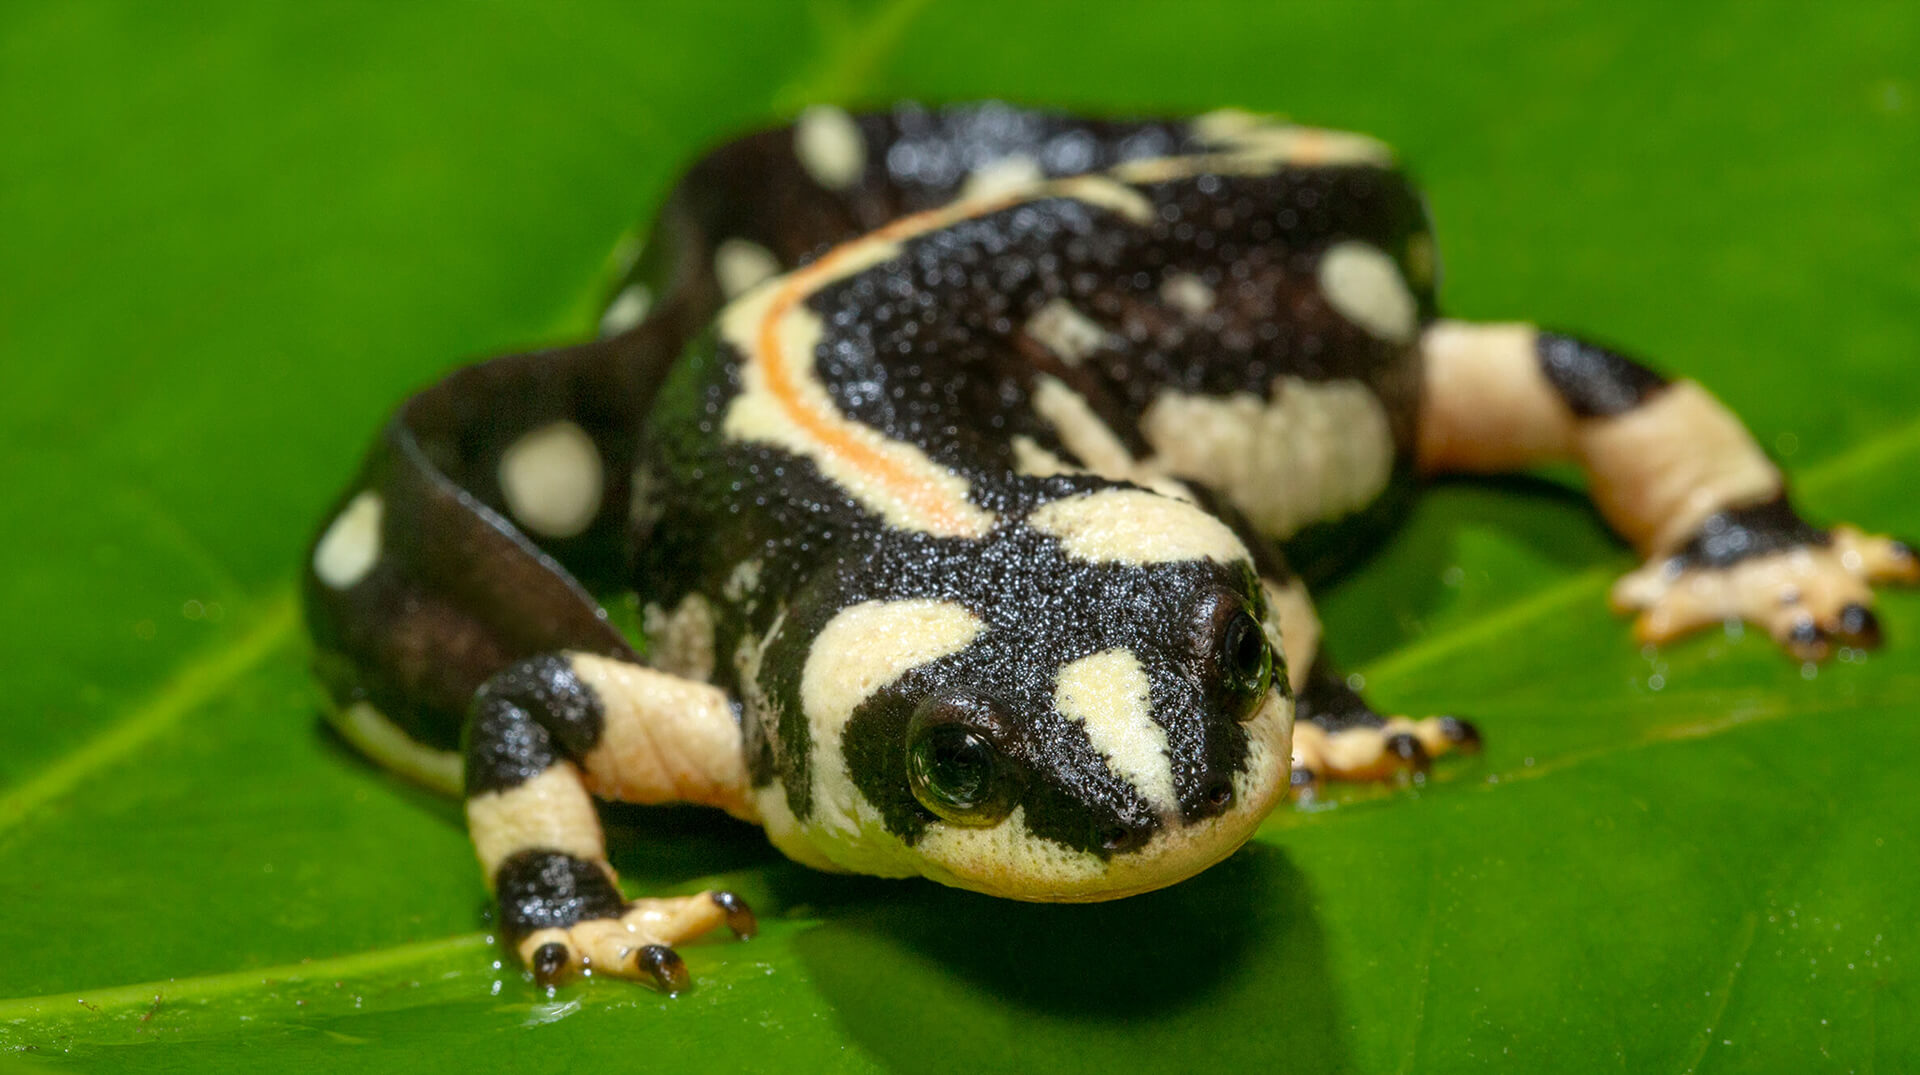 European fire salamander